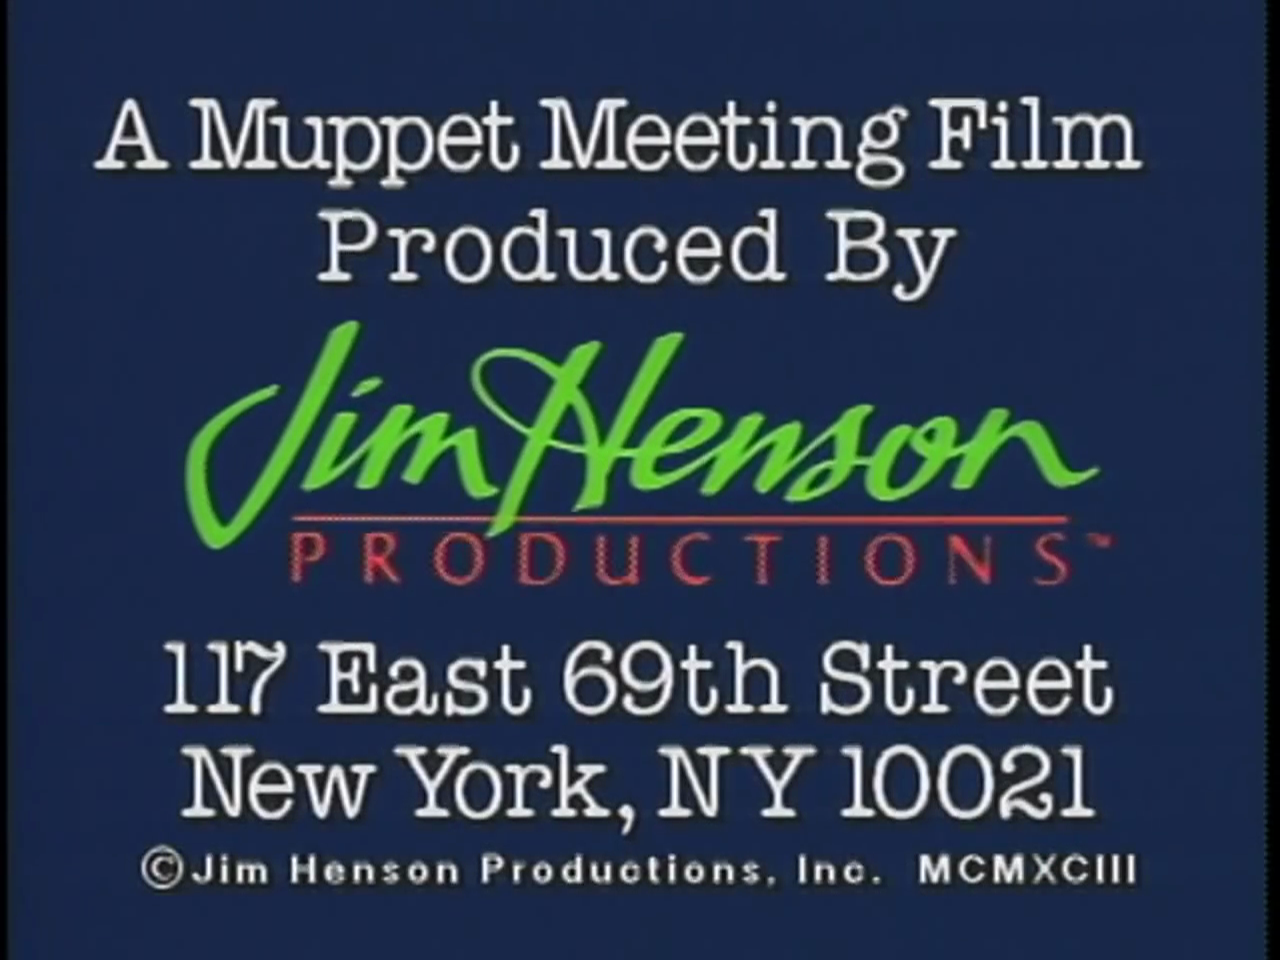 Jim Henson Productions (Muppet Meeting Films)